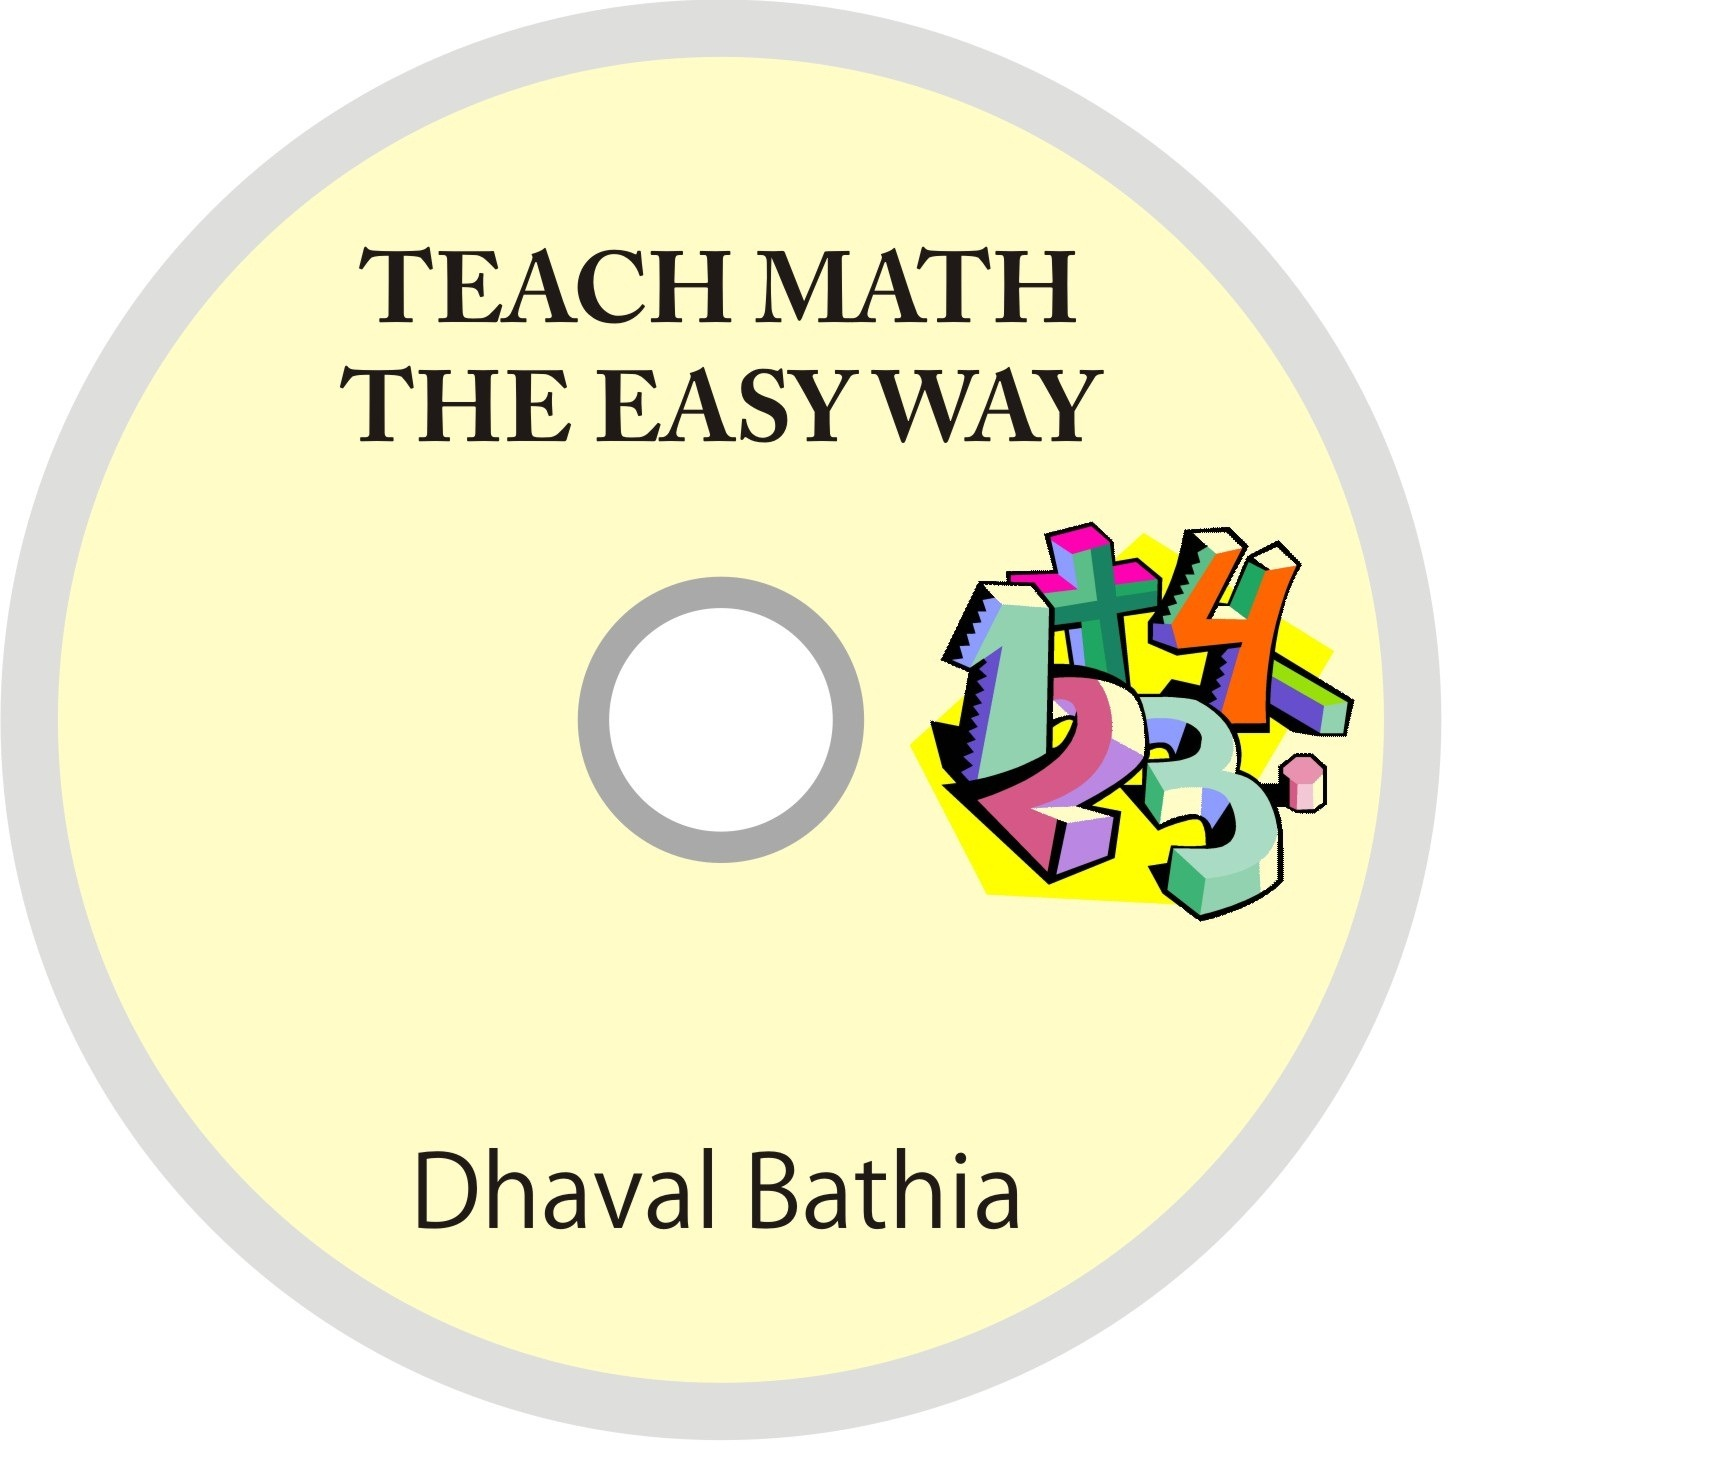 TEACH MATH THE EASY WAY